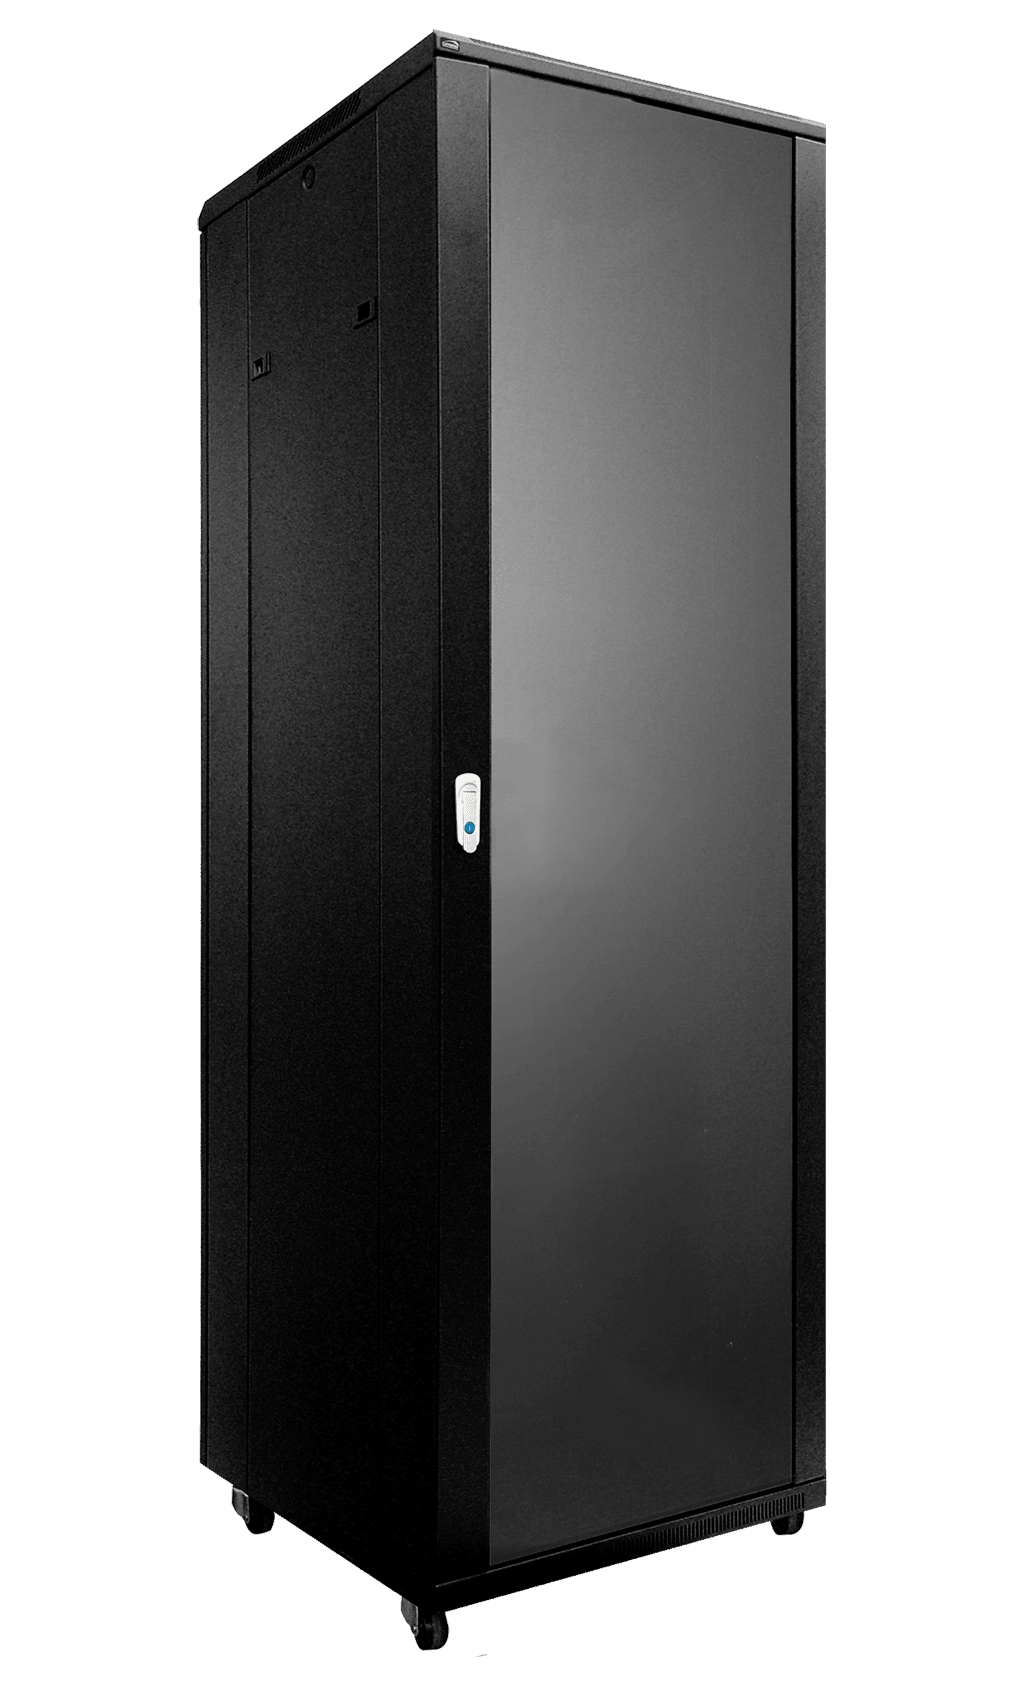 "SPR642 - 19"" rack cabinet - 42 units - 600mm W x 600mm D"